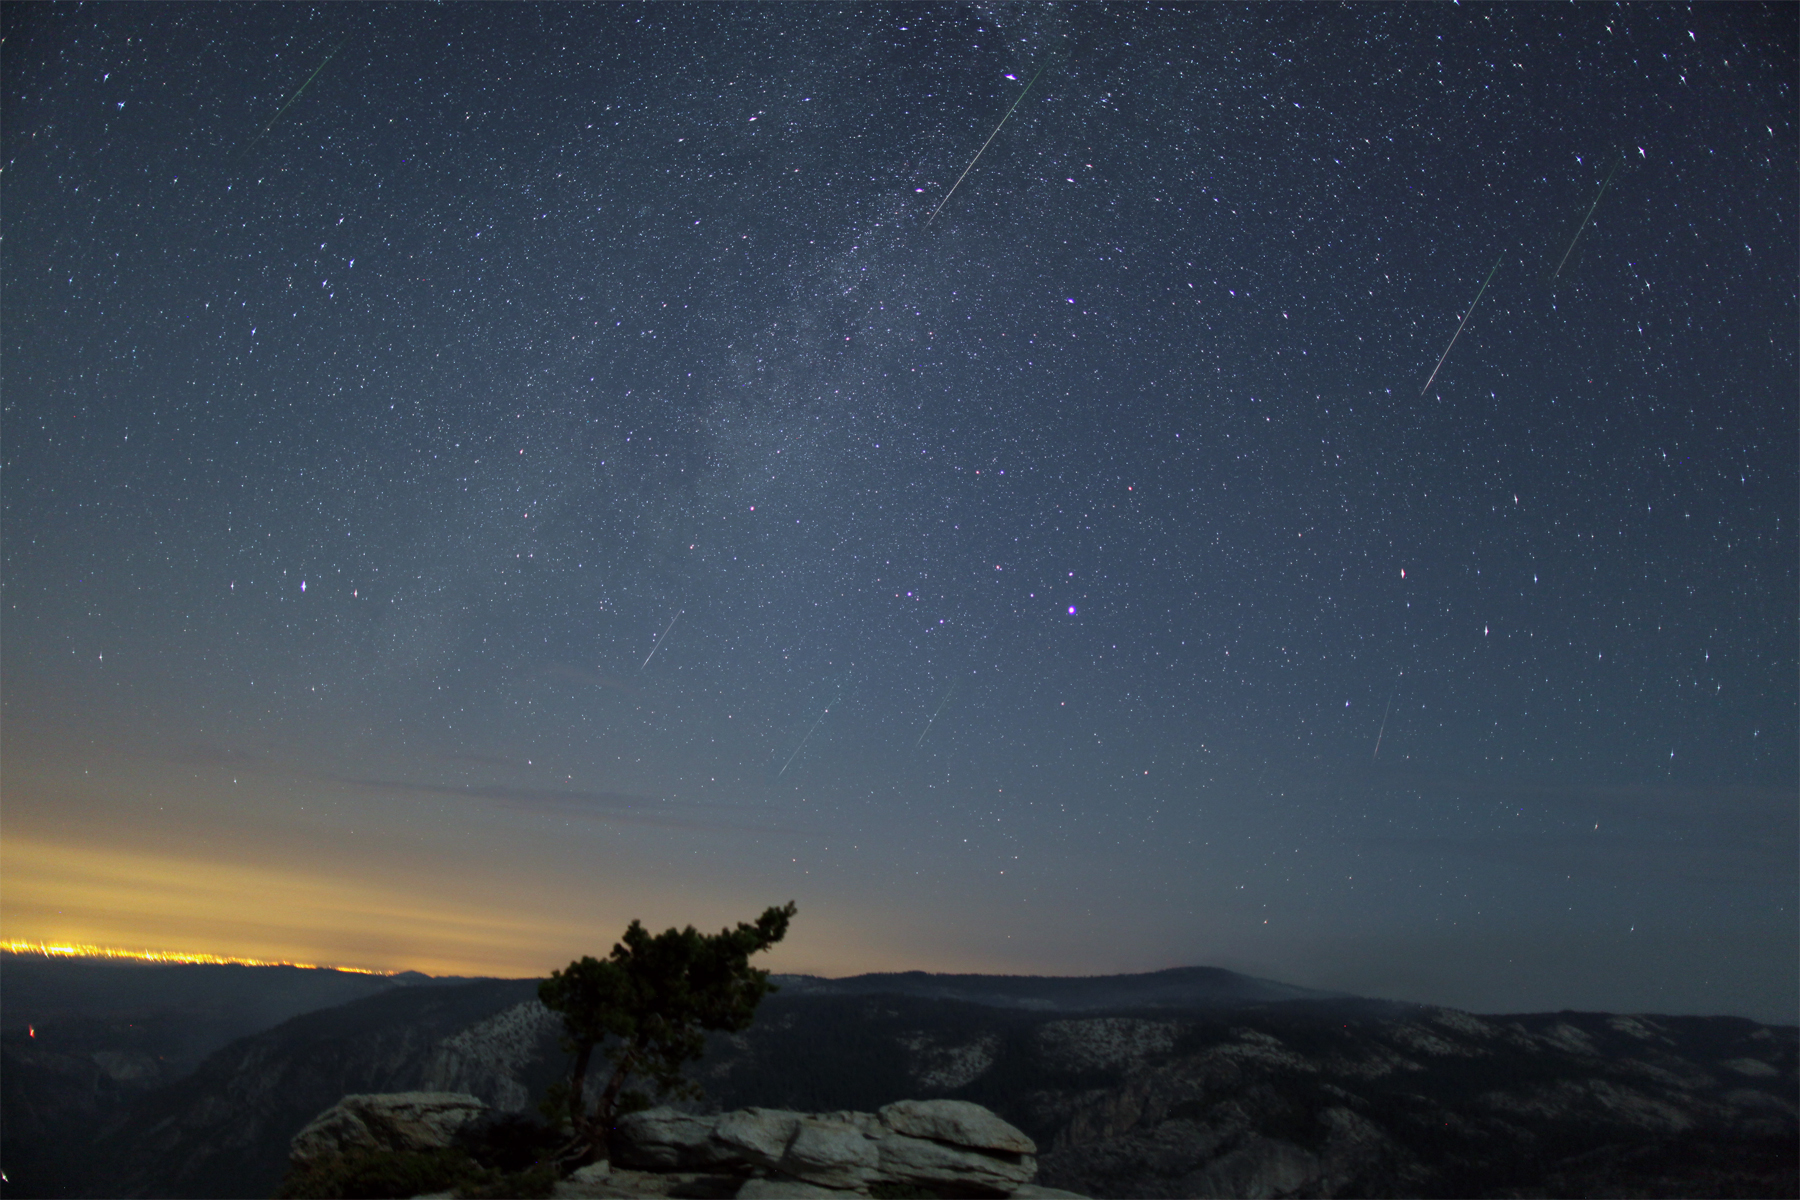 Composite Image of Perseid Meteor Shower – August 12th, 2012